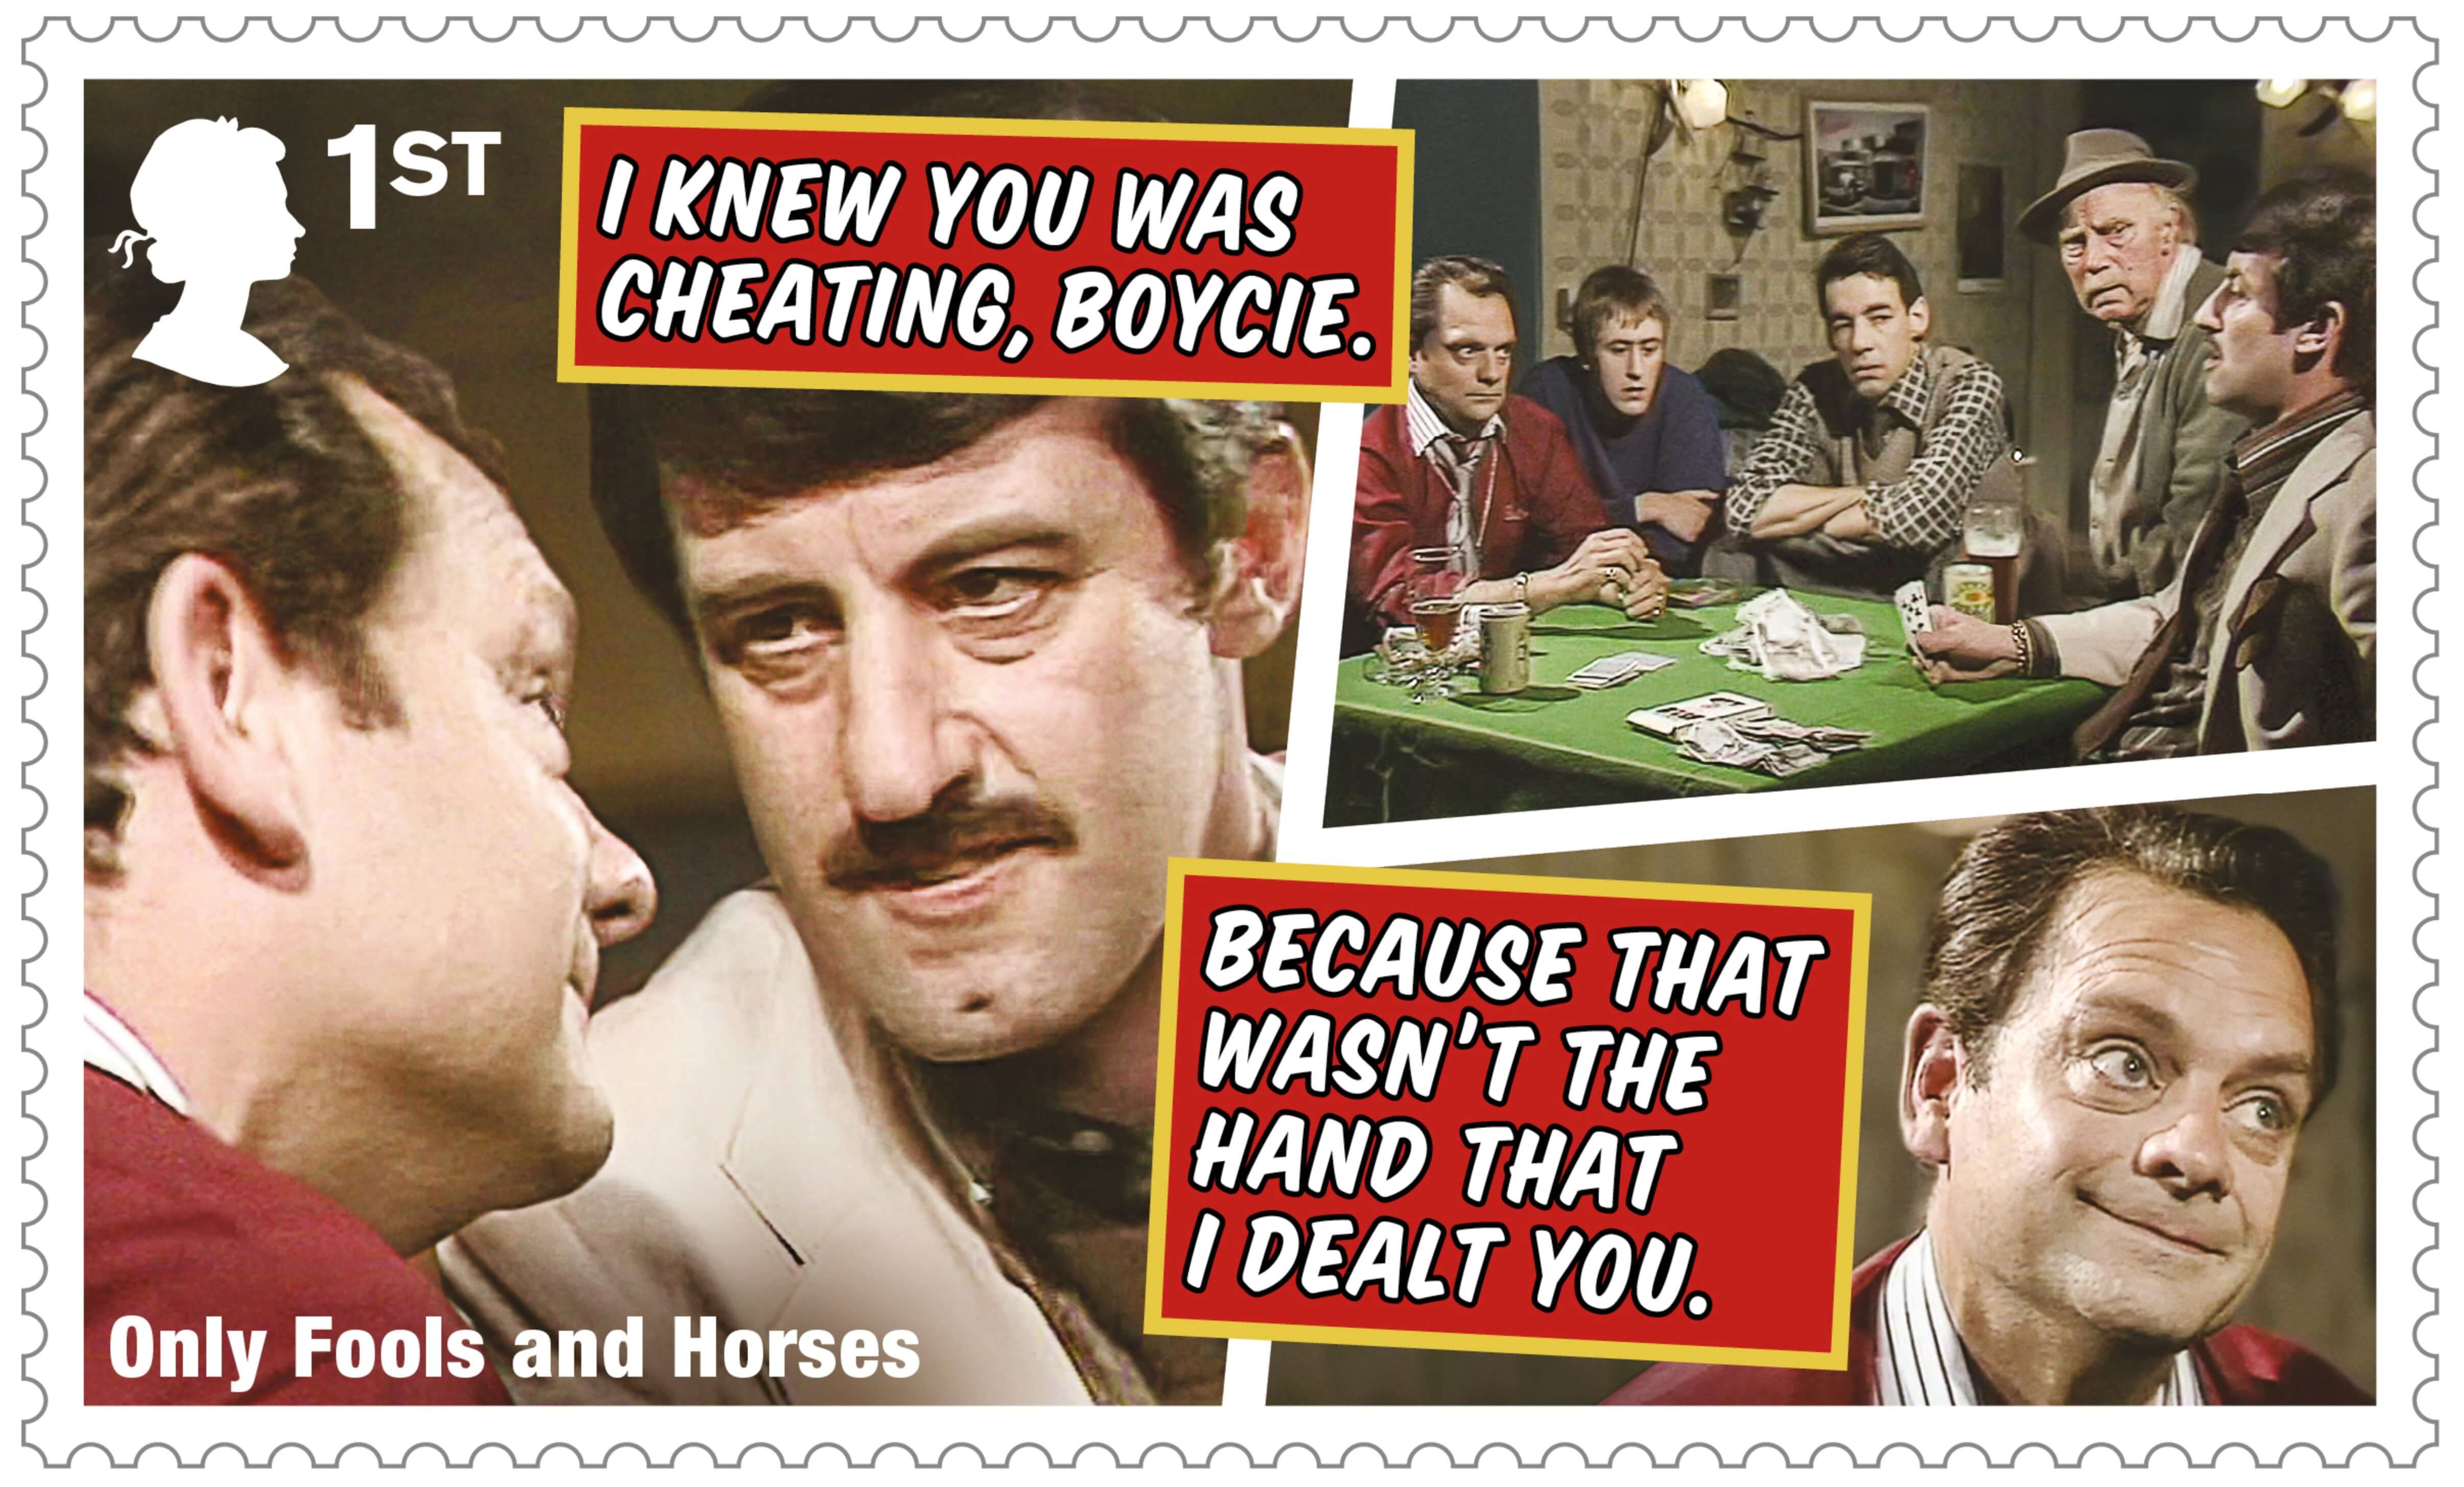 Only Fools and Horses - A Losing Streak